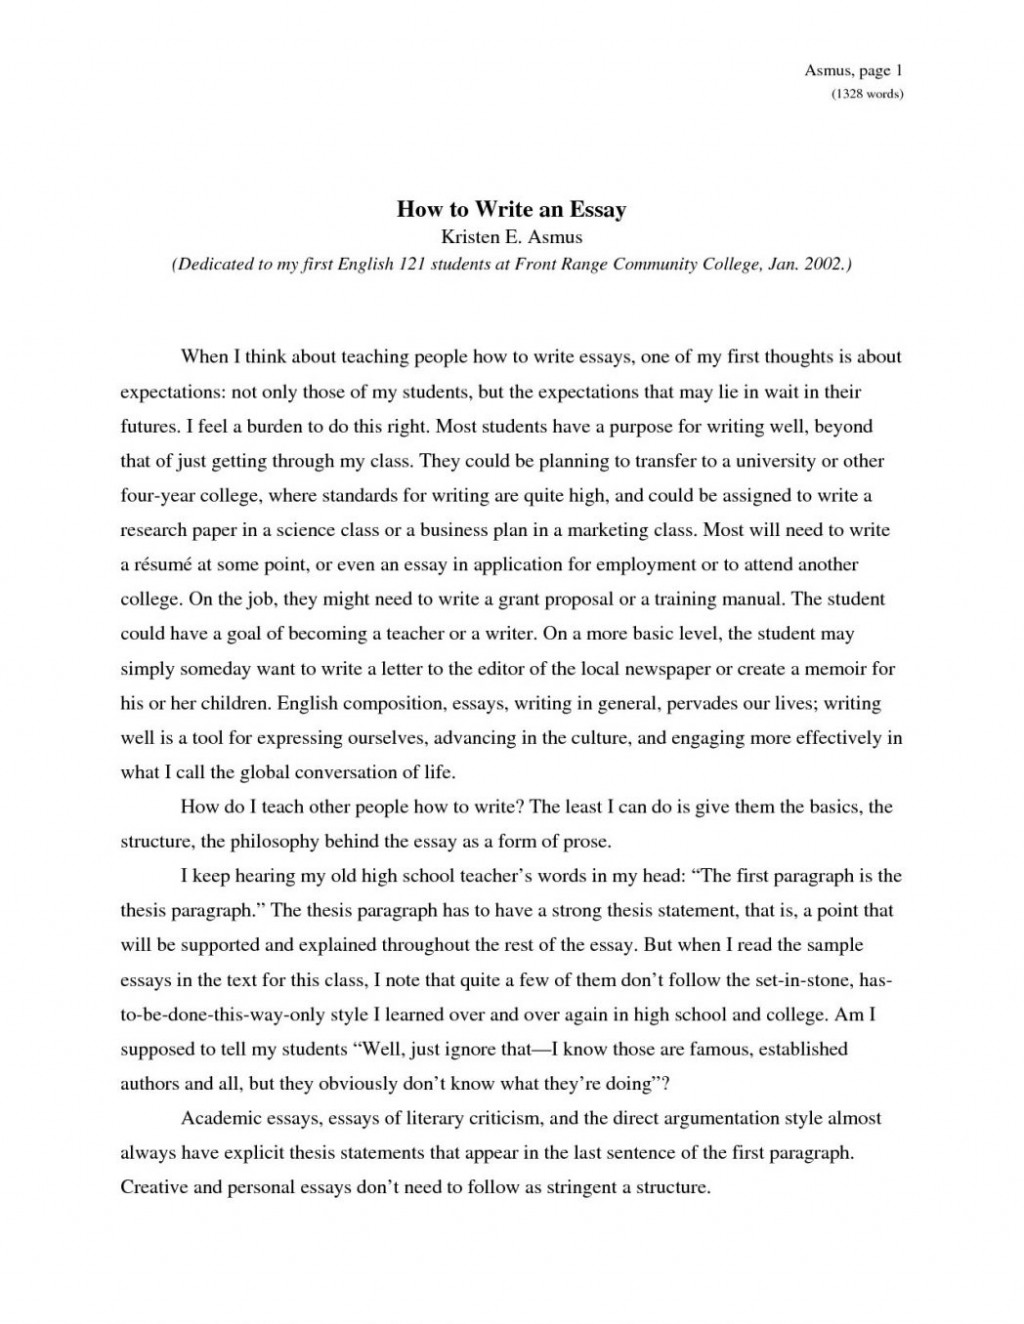 021 How To Write Critique Essay Introduction About Life Examples Pdf Daily Problems Es Good Film Speech On Movie Example An Article Art Criticism Unique Routine Of Housewife June 21 My Large